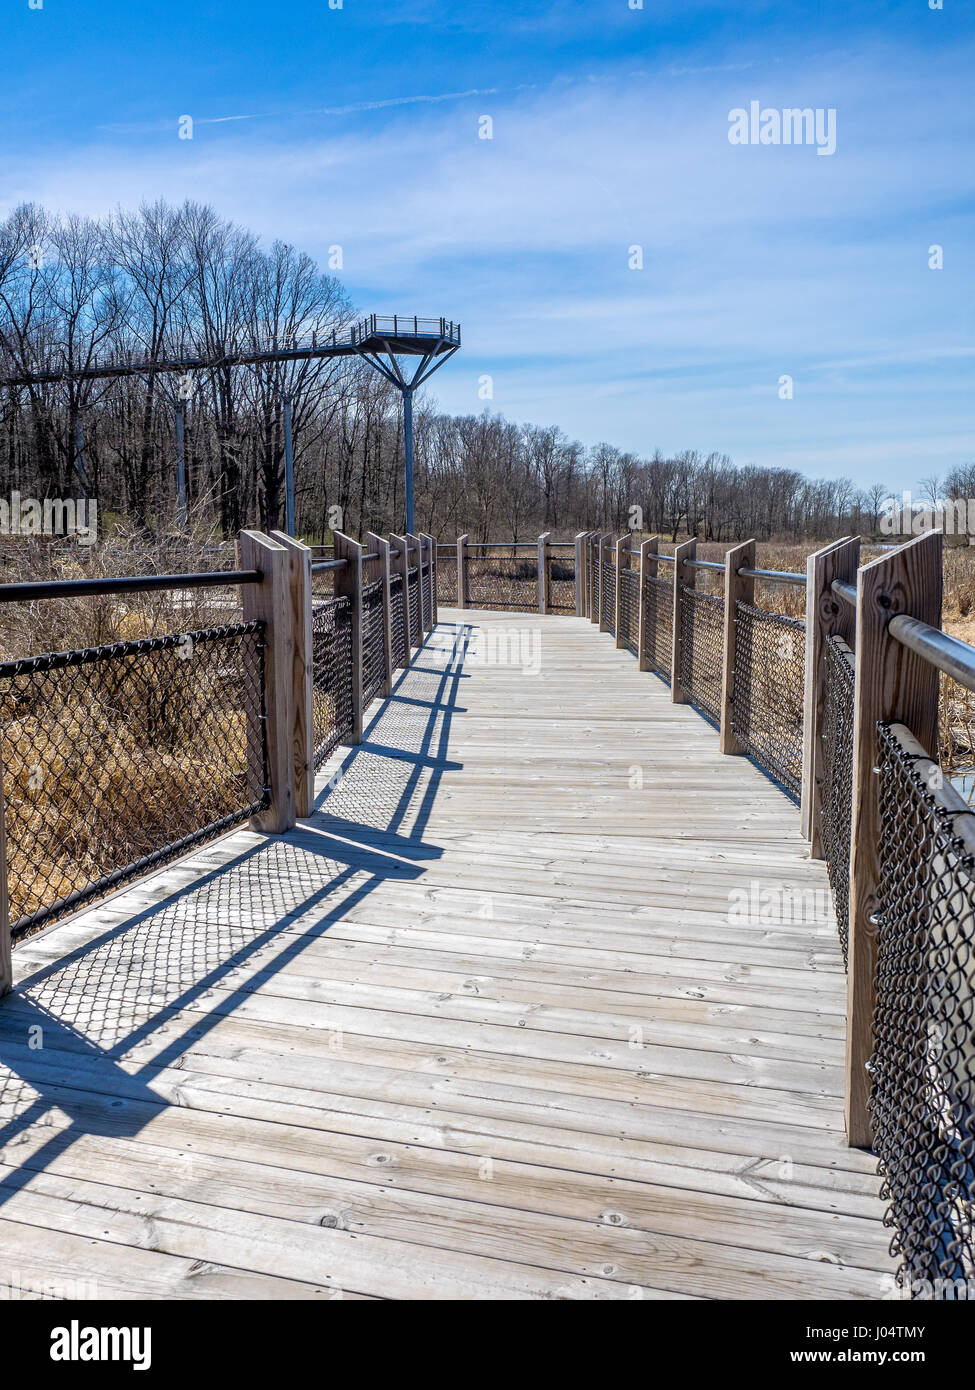 high and low canopy boardwalks Galien River County Park Michigan & high and low canopy boardwalks Galien River County Park Michigan ...